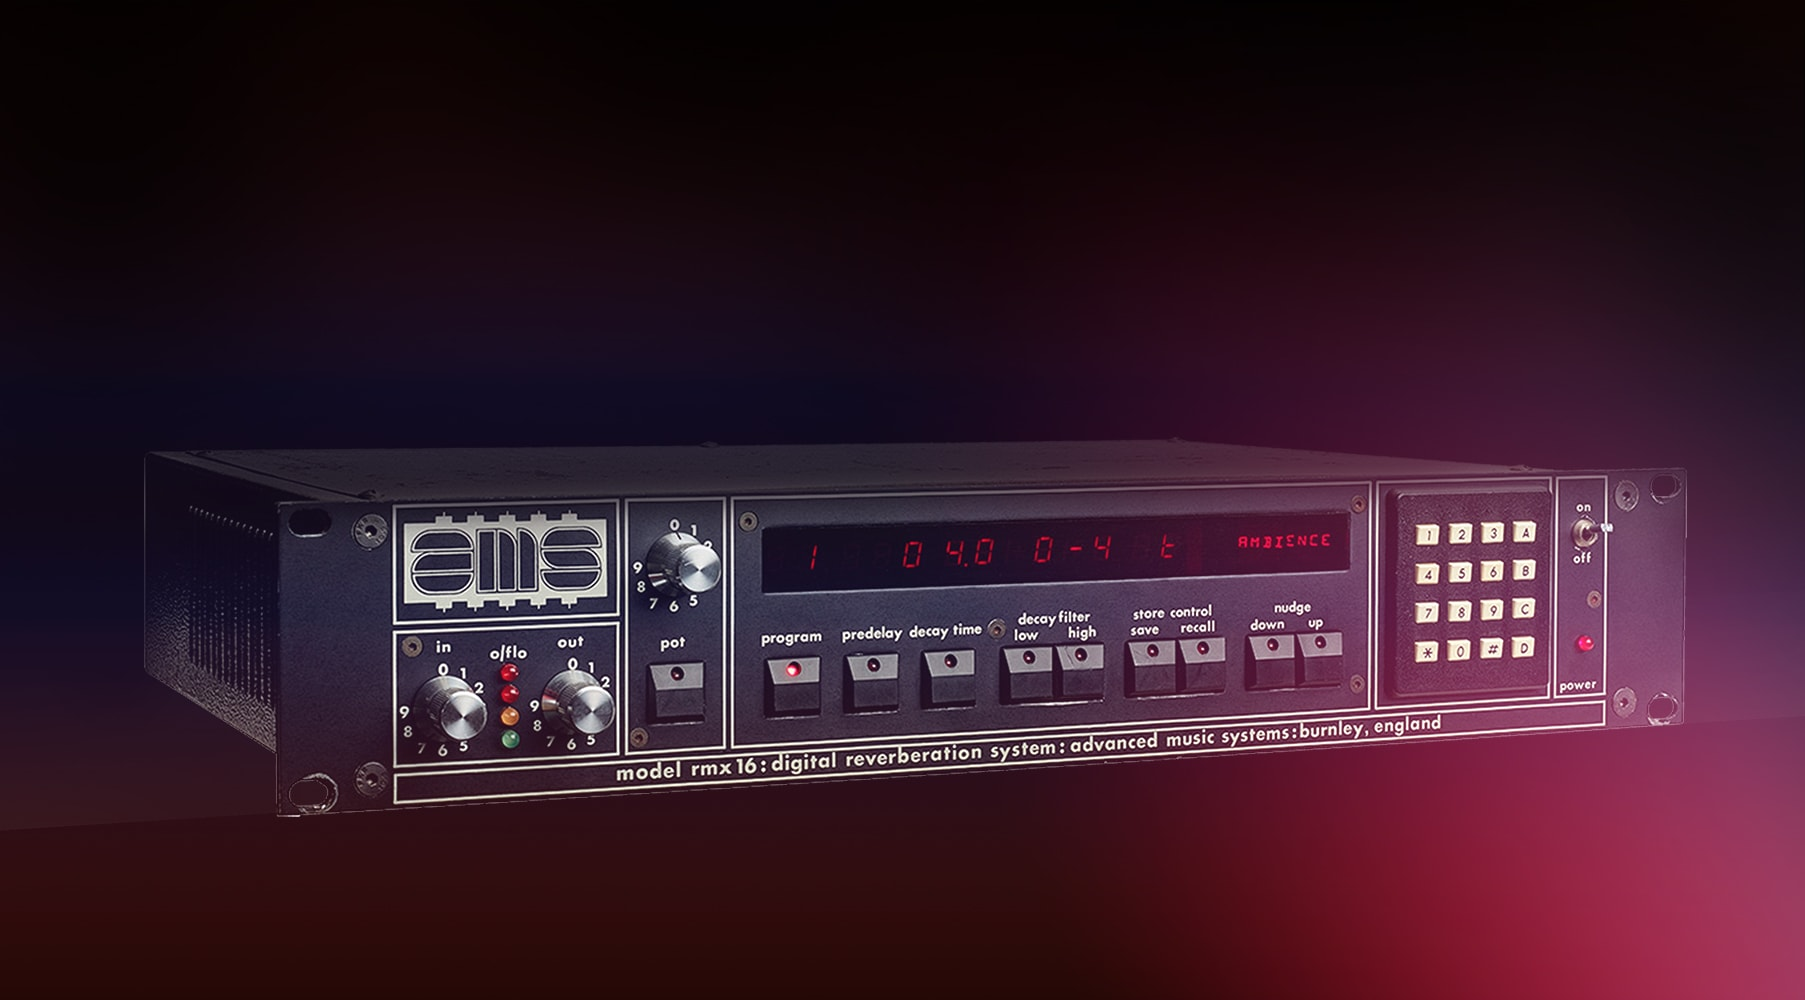 New Software Review: UAD AMS RMX16 Expanded Digital Reverb by